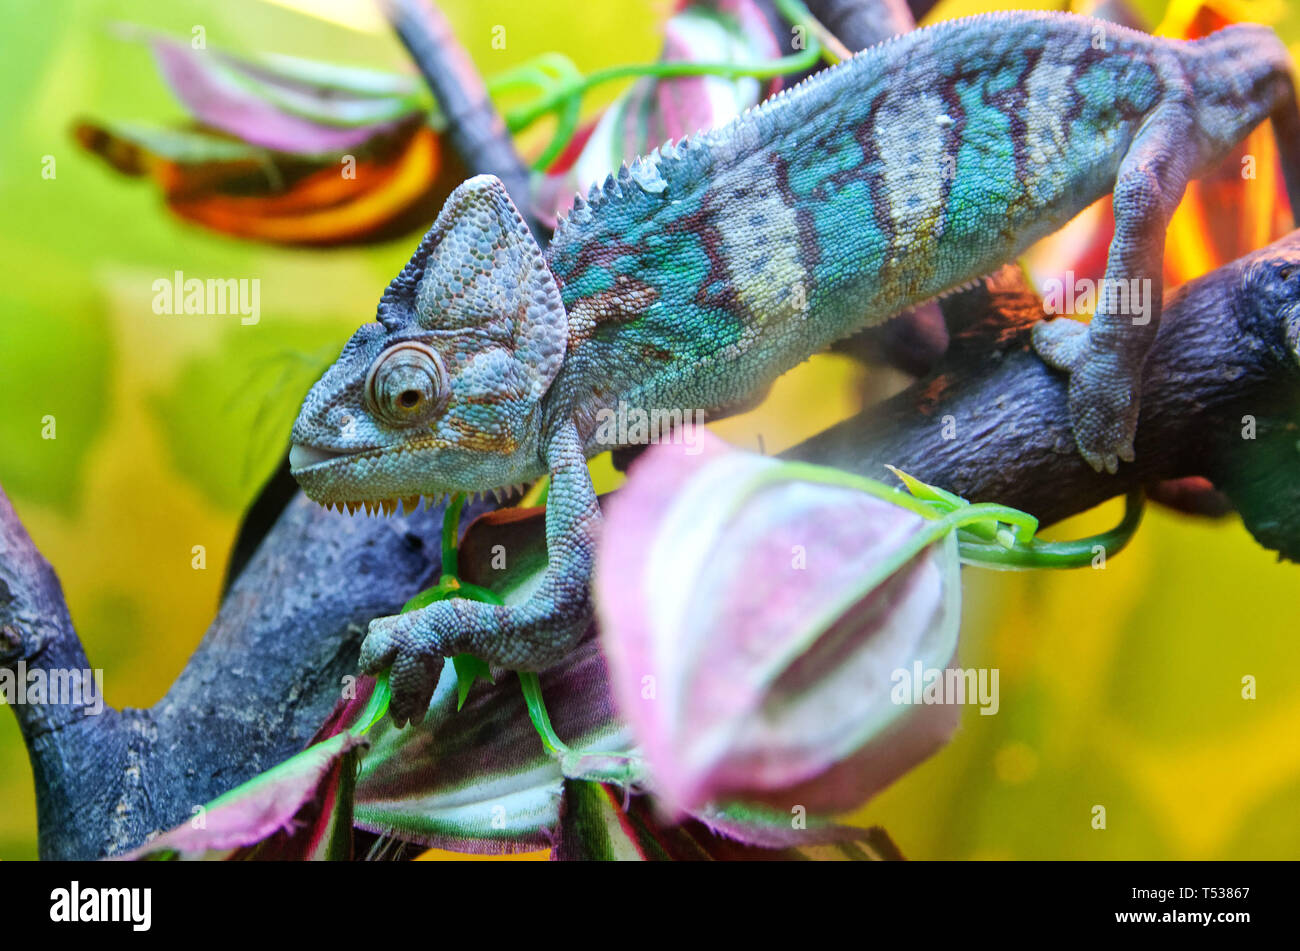 Chameleon sits on a tree branch and adapts to a multi-colored environment. Reptile, lizard. - Stock Image